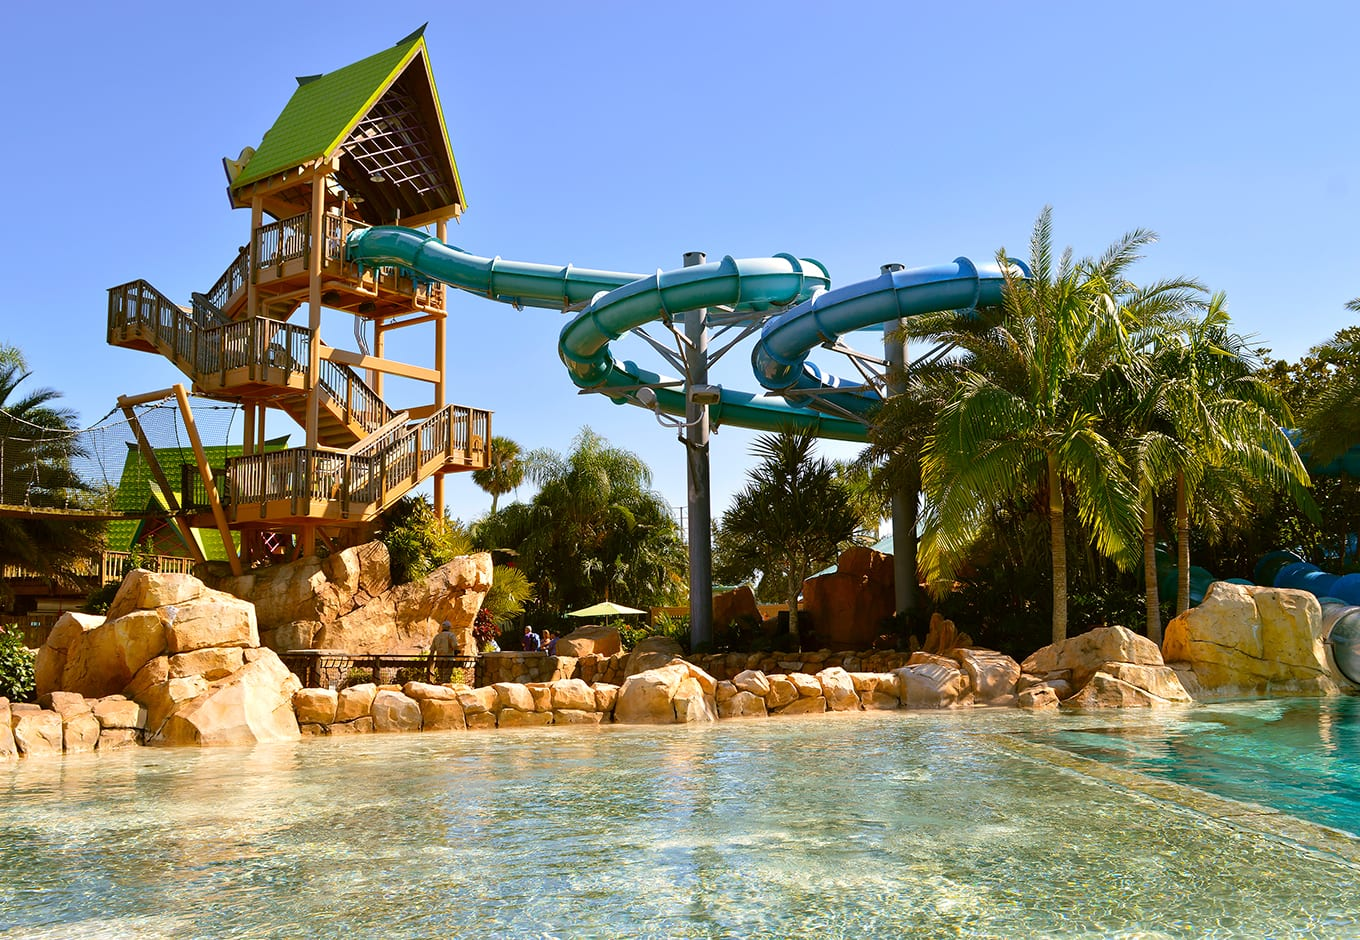 View of ttwo waterslides and a pristine pool surrounded by palm trees at the Aquatica Water Park, Orlando.